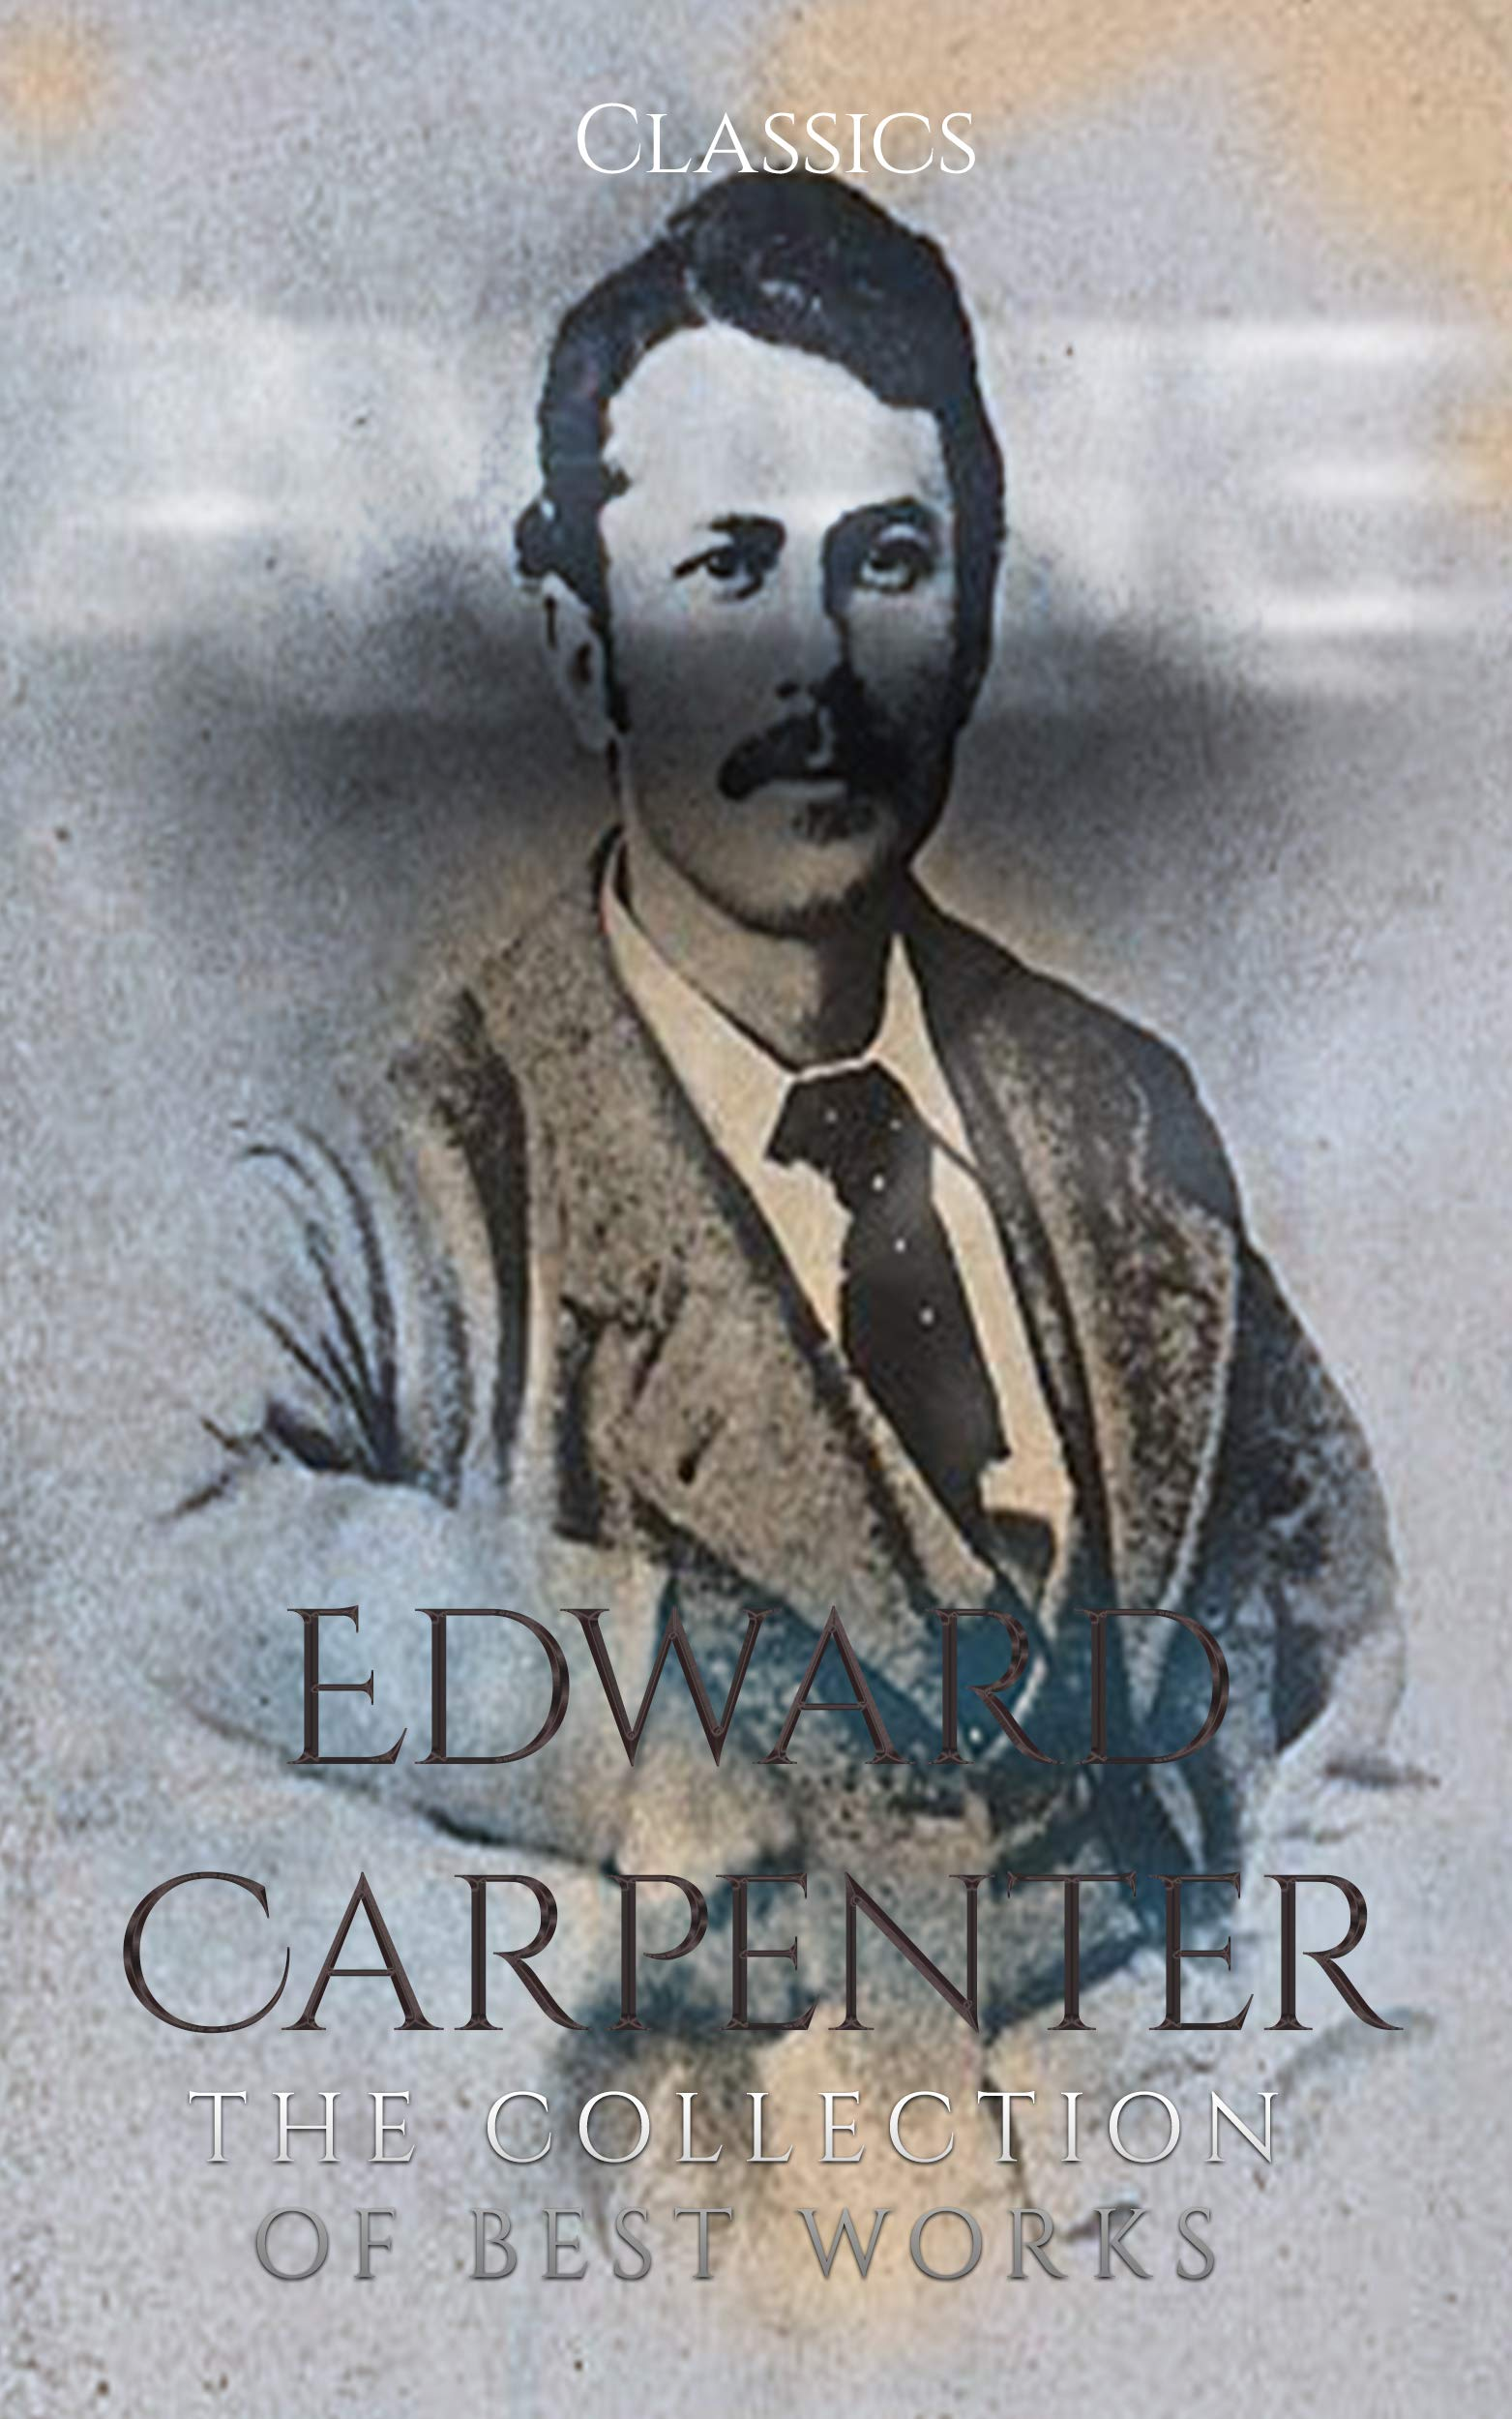 Edward Carpenter: The Collection of Best Works (Annotated): Collection Includes Civilisation Its Cause and Cure, Iolus, Never Again!, Pagan and Christian Creeds Their Origin and Meaning, and More.